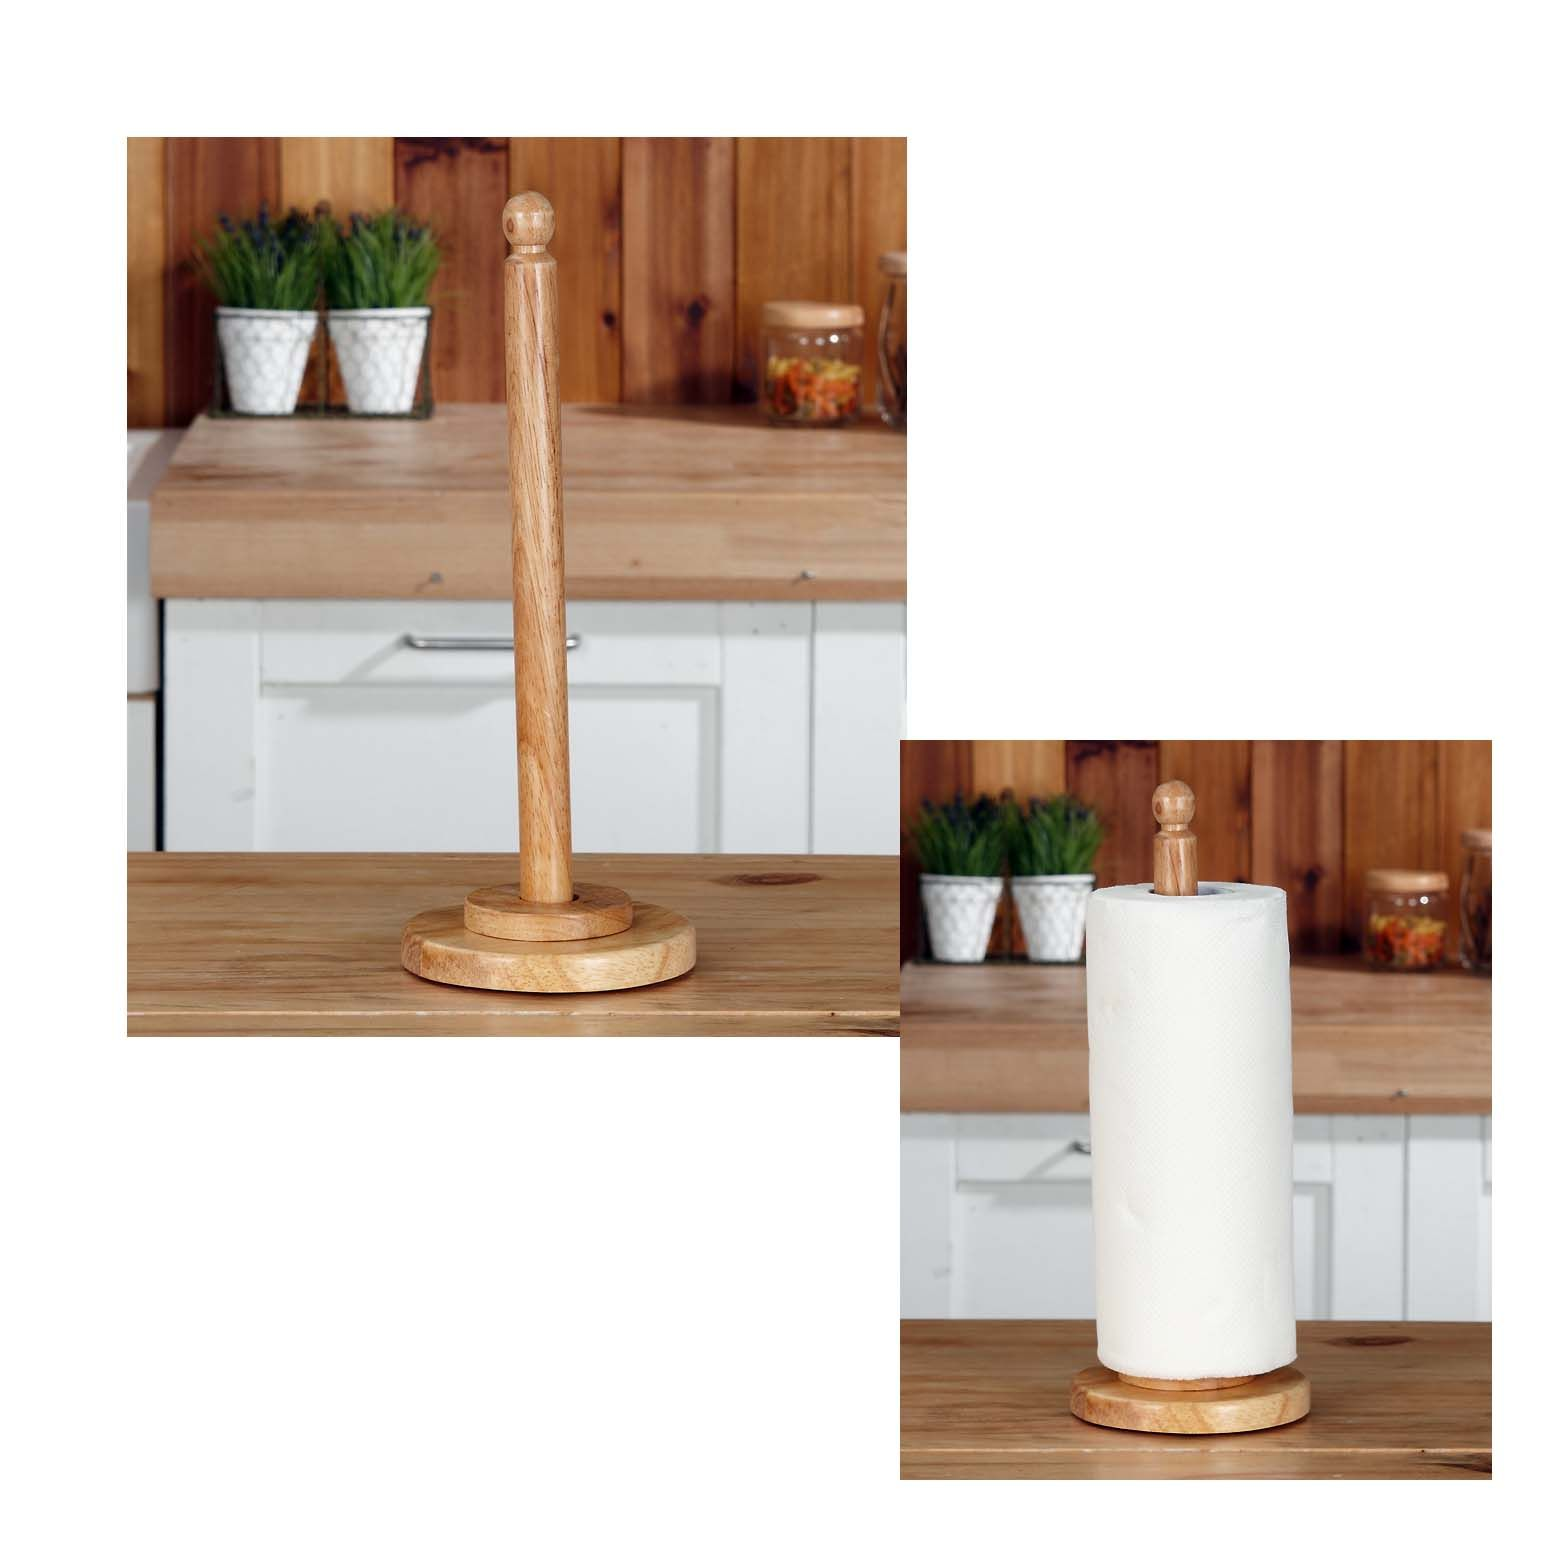 Charmant Rubber Wood Kitchen Paper Towel Holder Towel